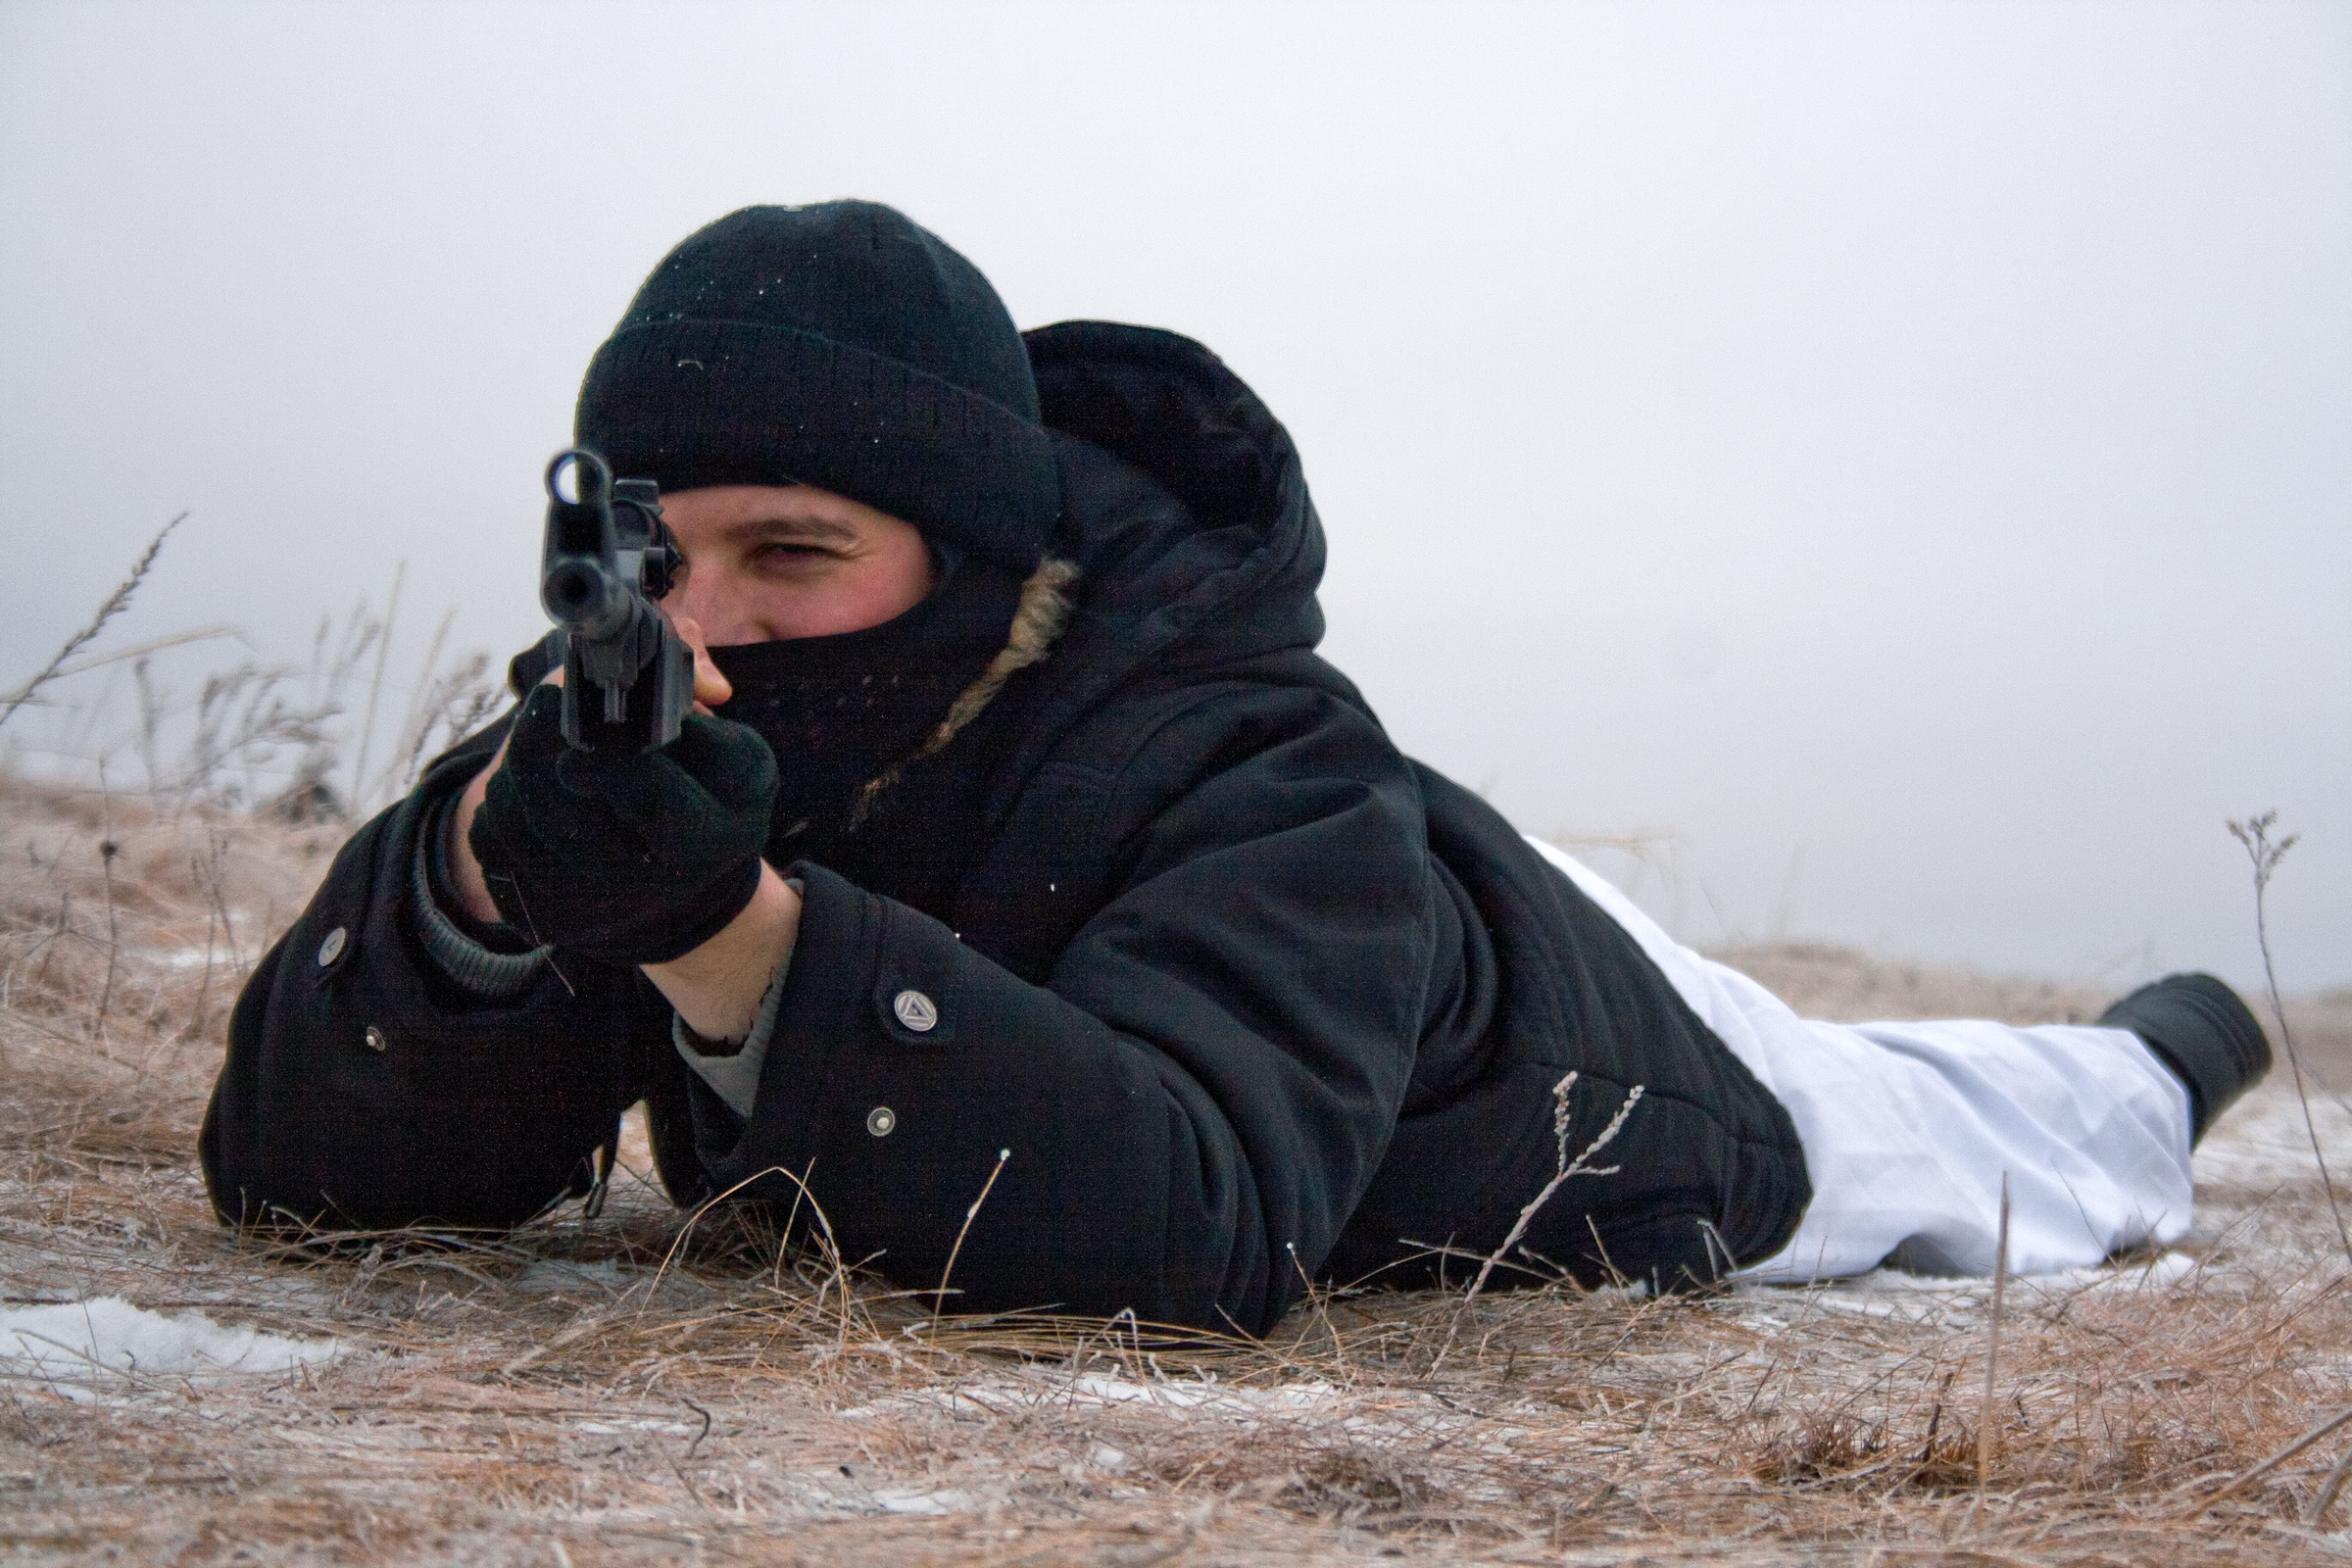 sniper, Armed, Special, Mission, Projectile, HQ Photo